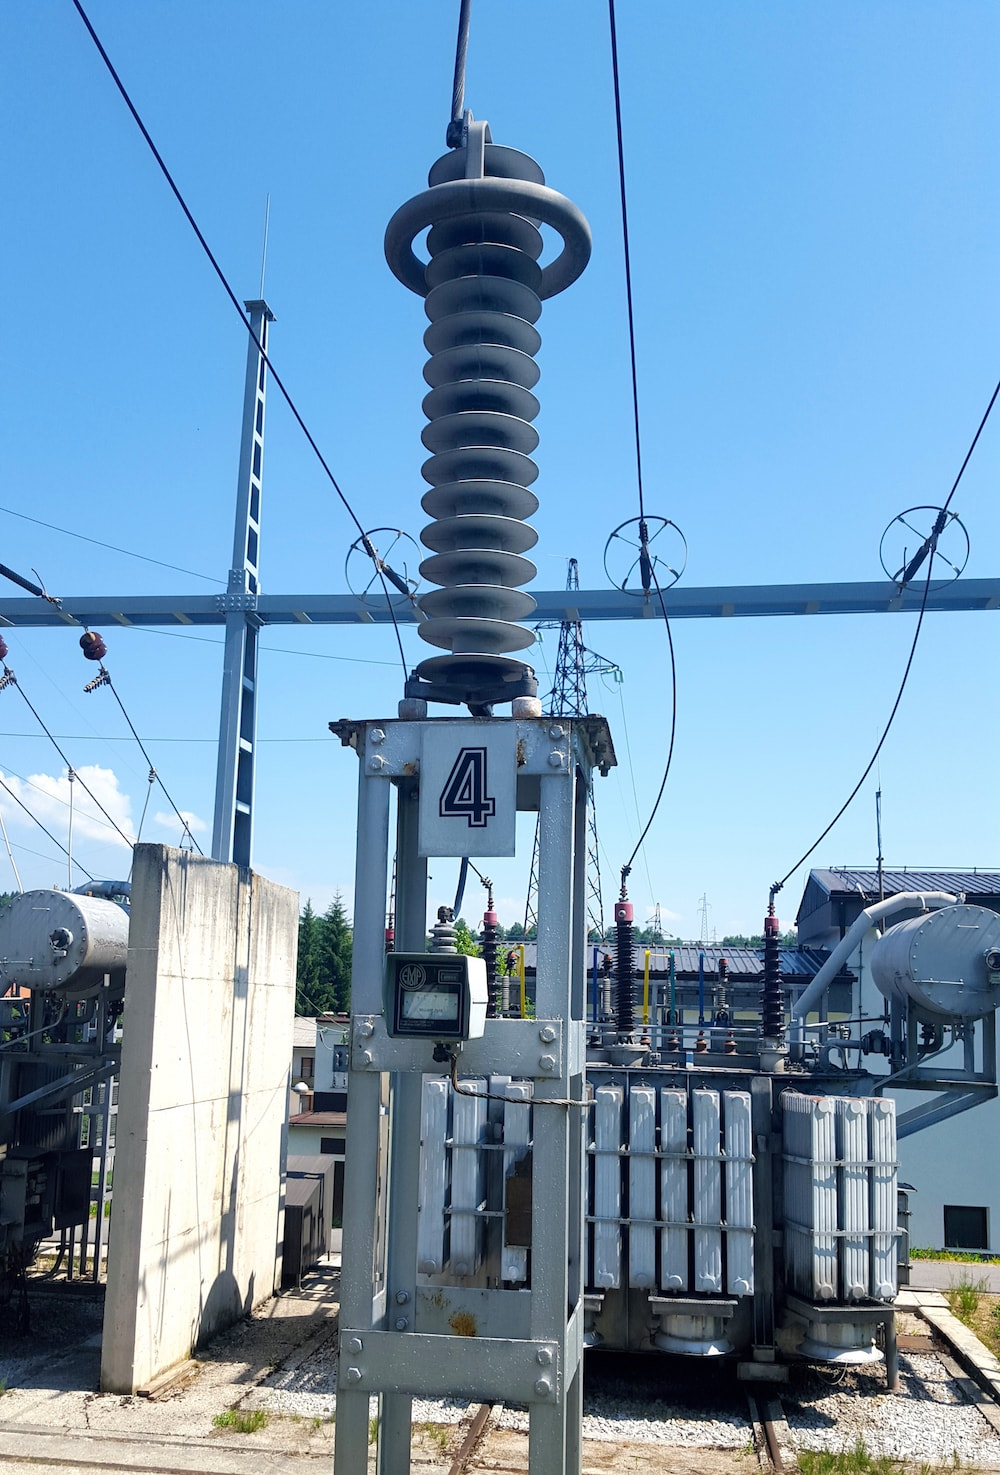 arrester Implementing a Program to Monitor Condition of Station Arresters Djokic 6 1